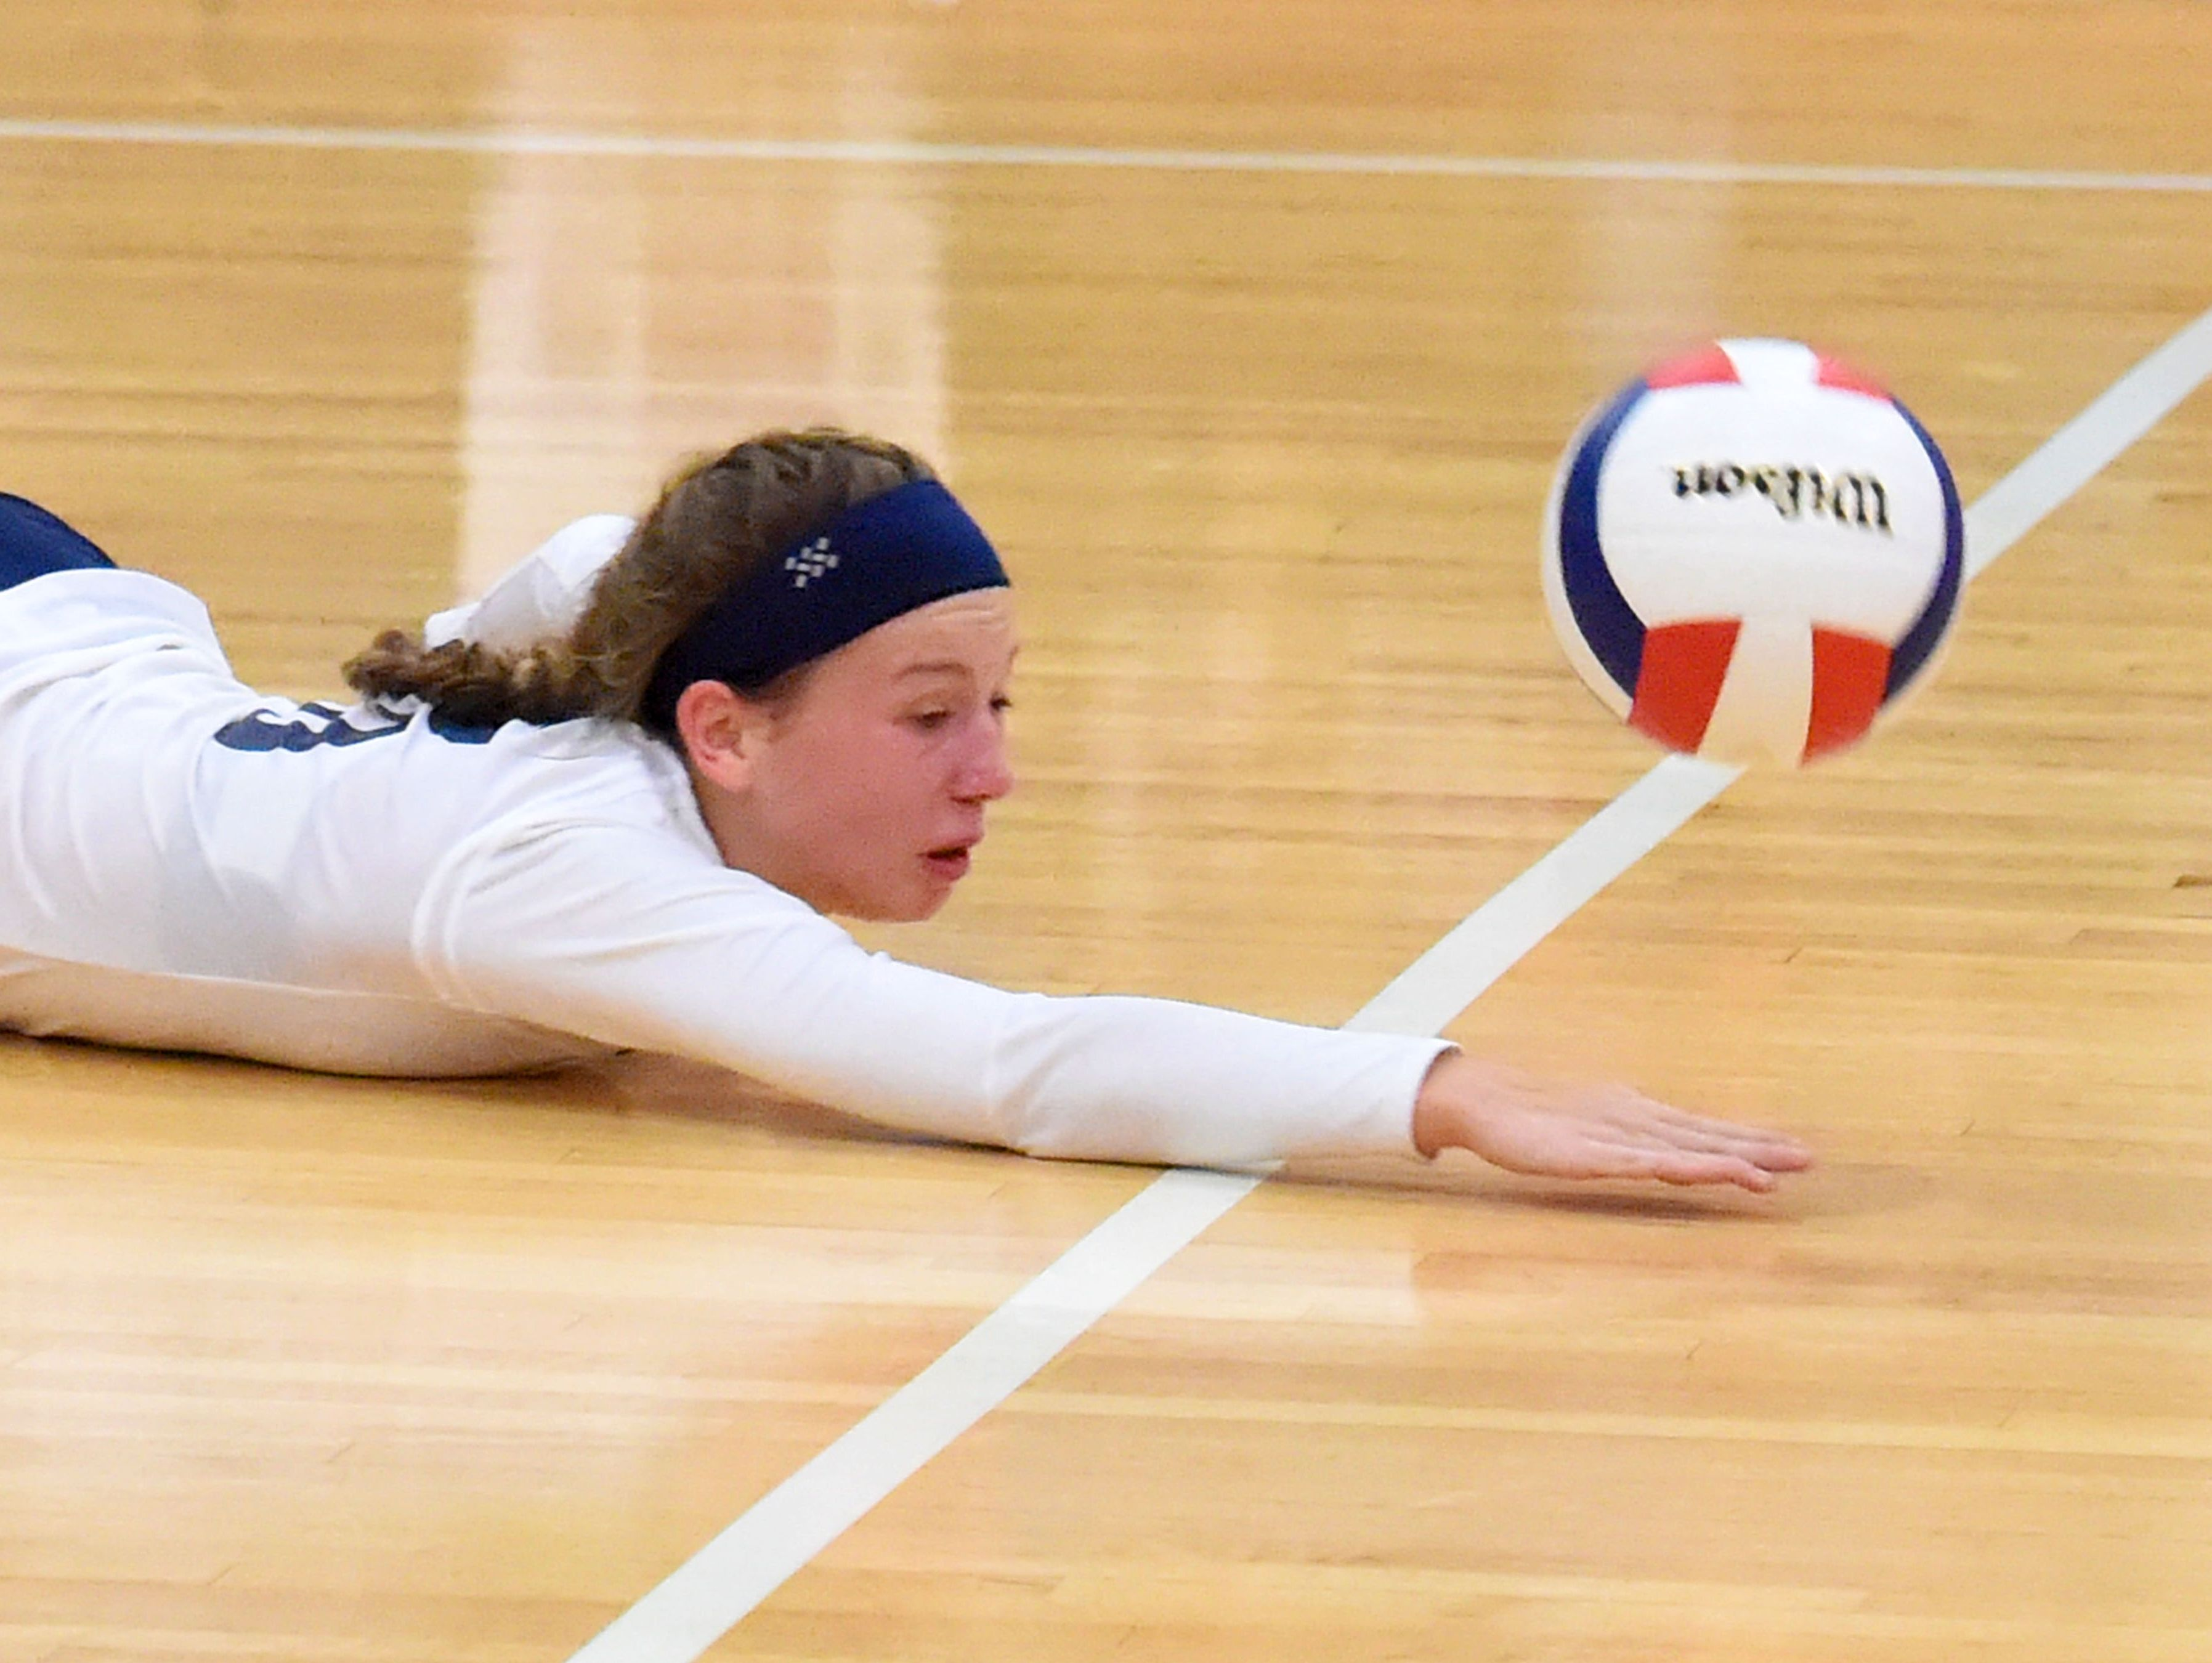 Robert E. Lee's Meghan Wood just misses diving after the ball during a volleyball game played in Staunton on Tuesday, Nov. 15, 2016. Lee High beat Giles High School to win the 2A state semifinal match, 3-1.